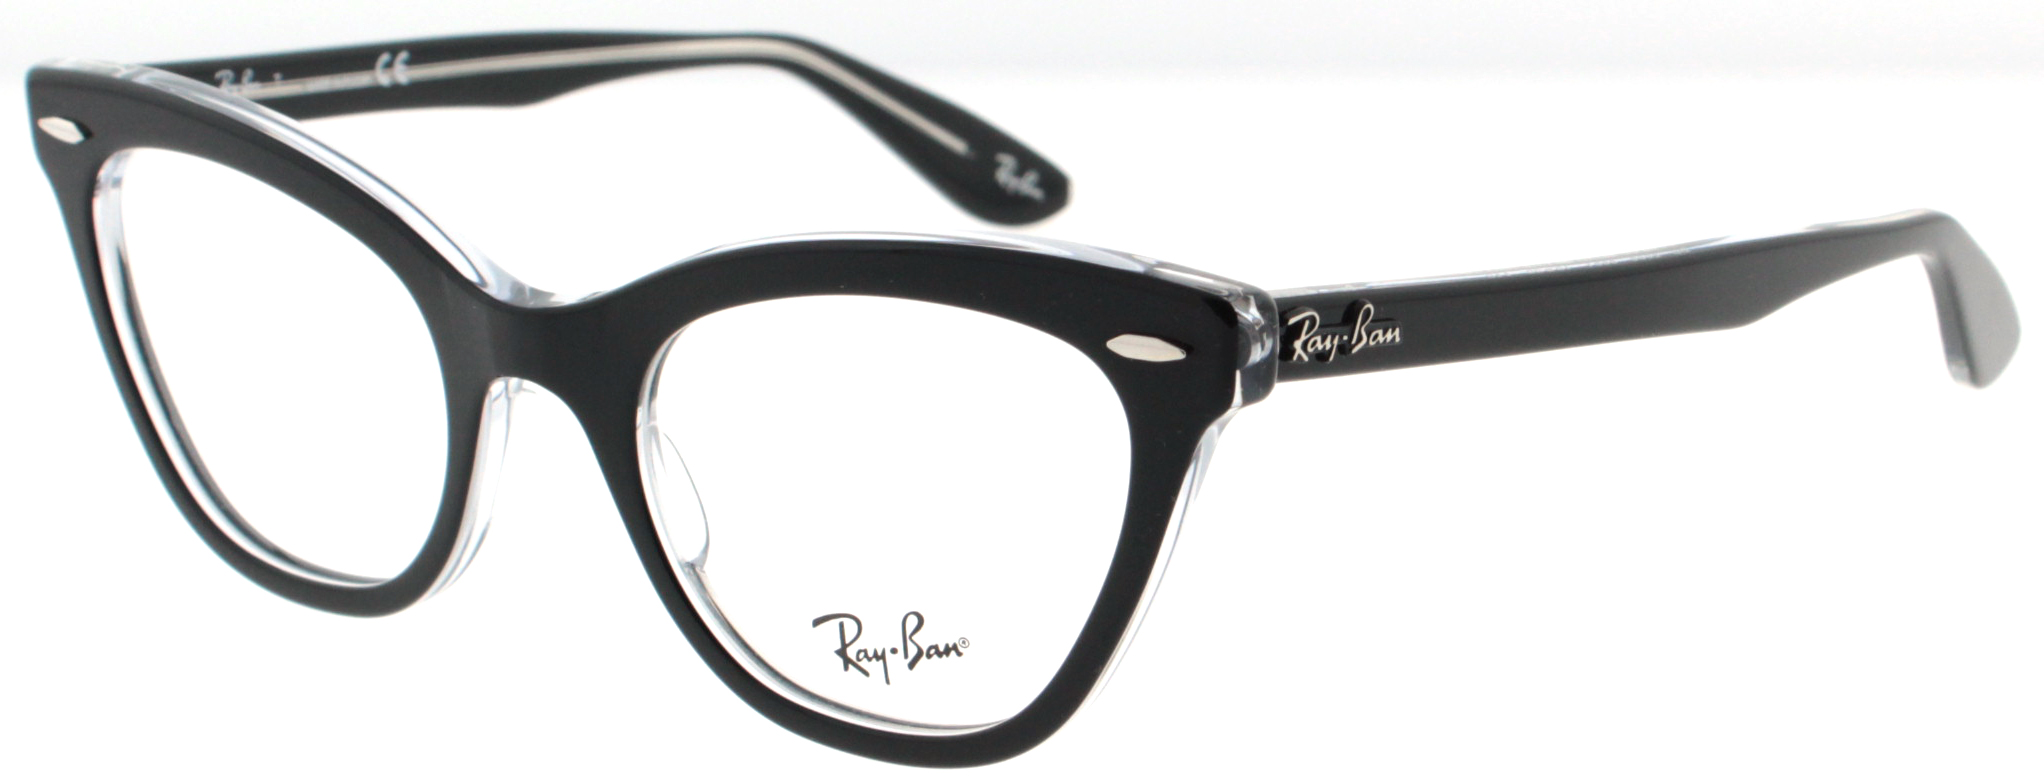 Ray Ban RB RX 5226 2034 Black/Crystal Womens Cat Eye ...